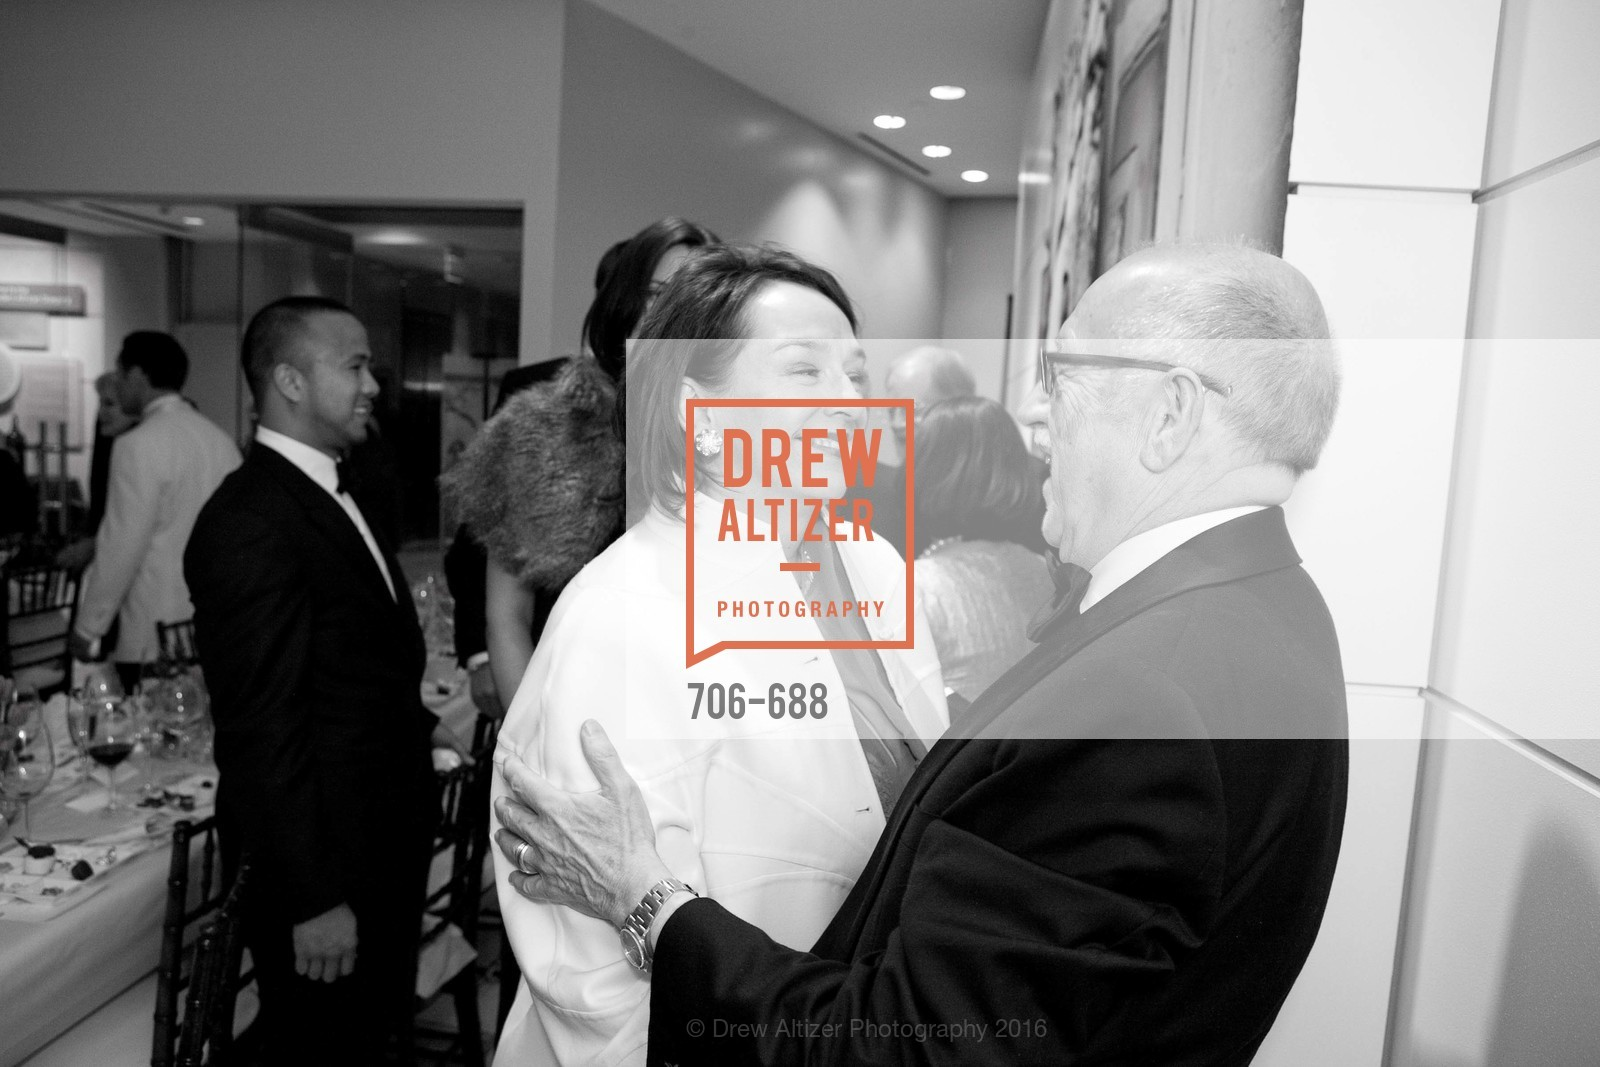 Top Picks, Wilkes Bashford, In Memoriam 1933-2016, January 16th, 2016, Photo,Drew Altizer, Drew Altizer Photography, full-service event agency, private events, San Francisco photographer, photographer California